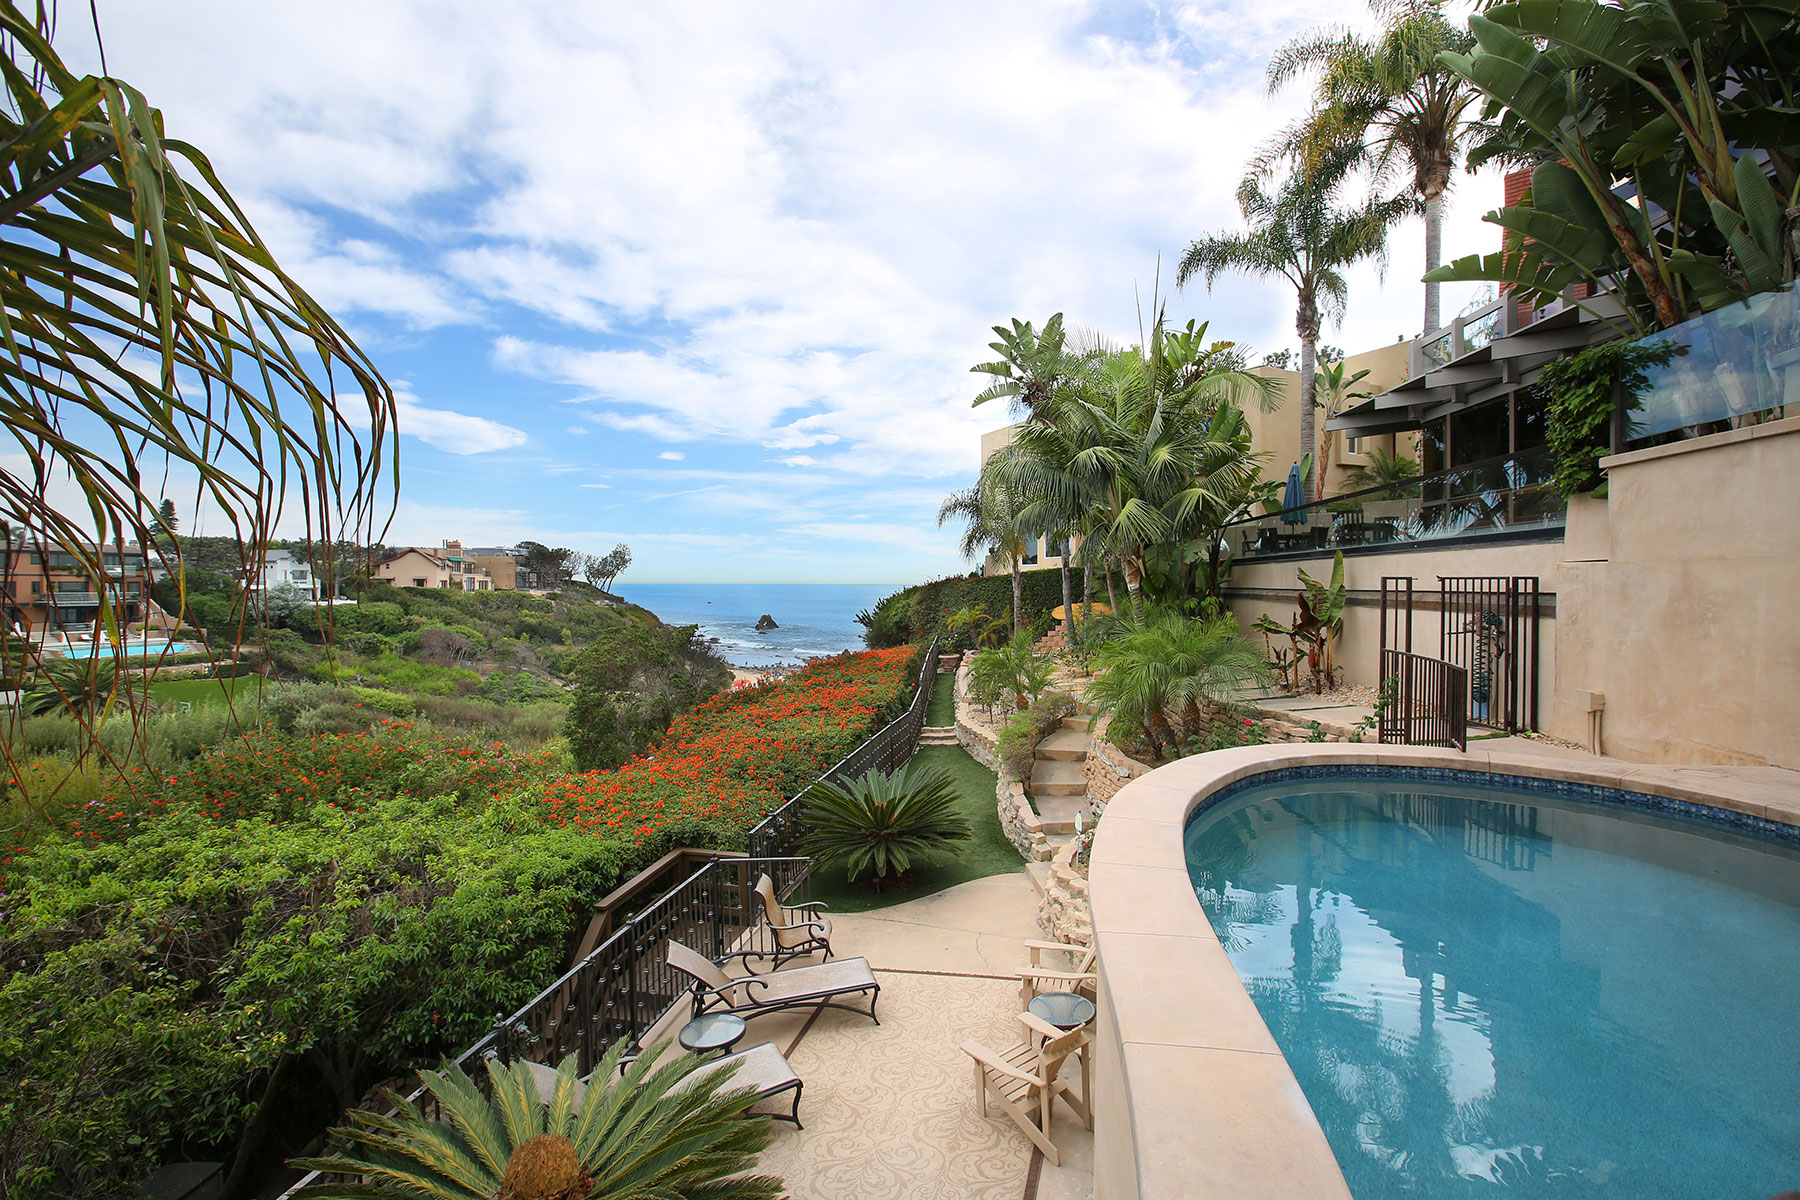 Single Family Home for Sale at Idyllic Seaside Living 218 Hazel Drive Corona Del Mar, California 92625 United States